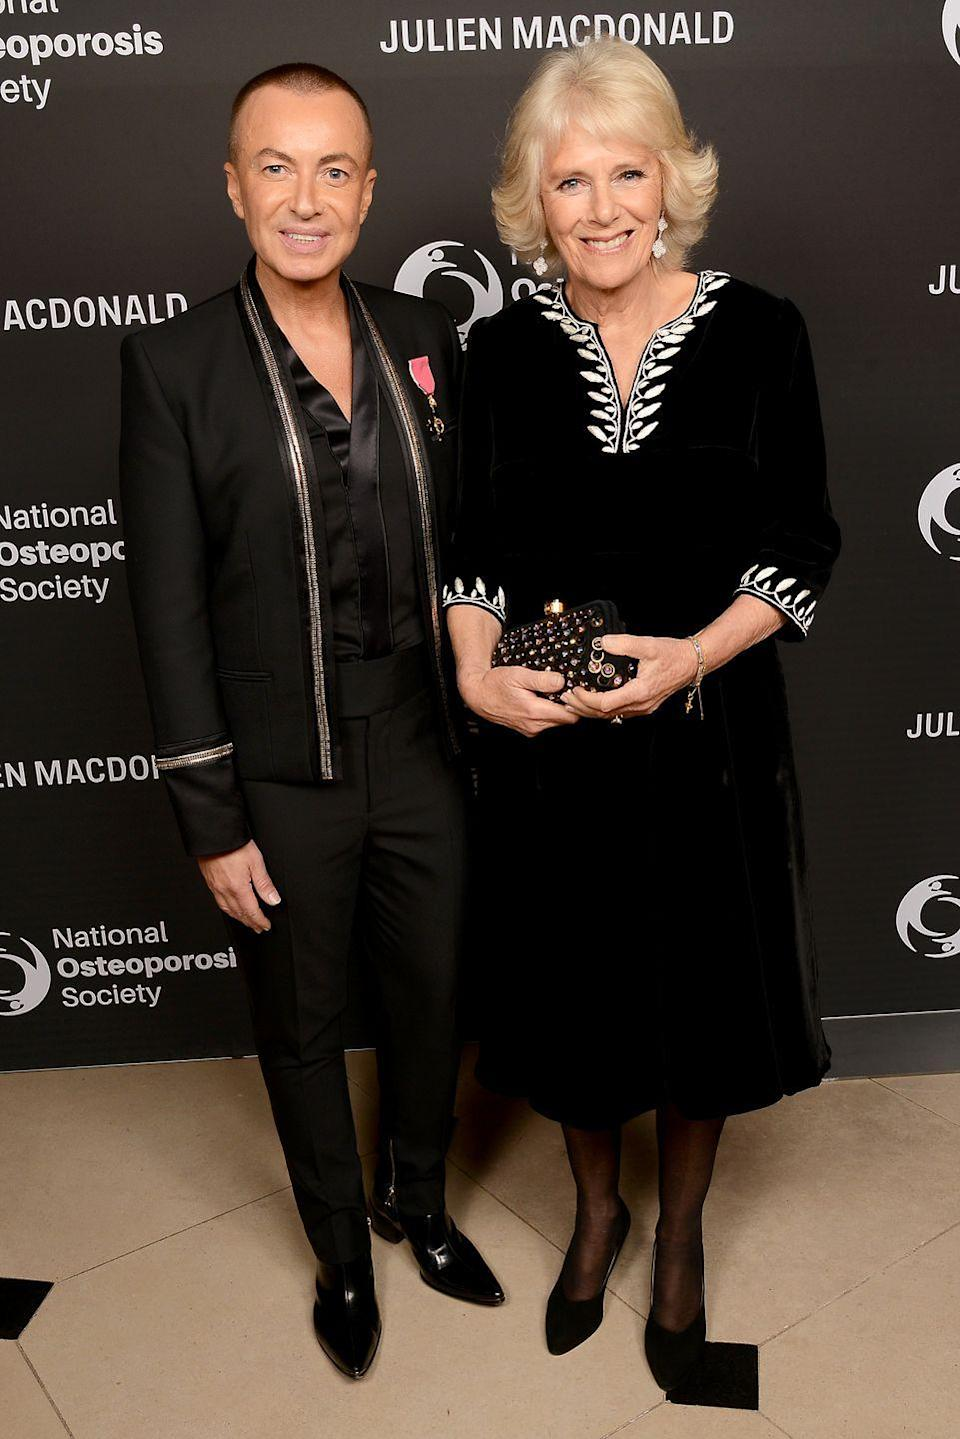 <p>The Duchess of Cornwall recycled a black velvet dress from earlier this month to attend the Julien Macdonald, on the left, Fashion Show for the National Osteoporosis Society. </p>